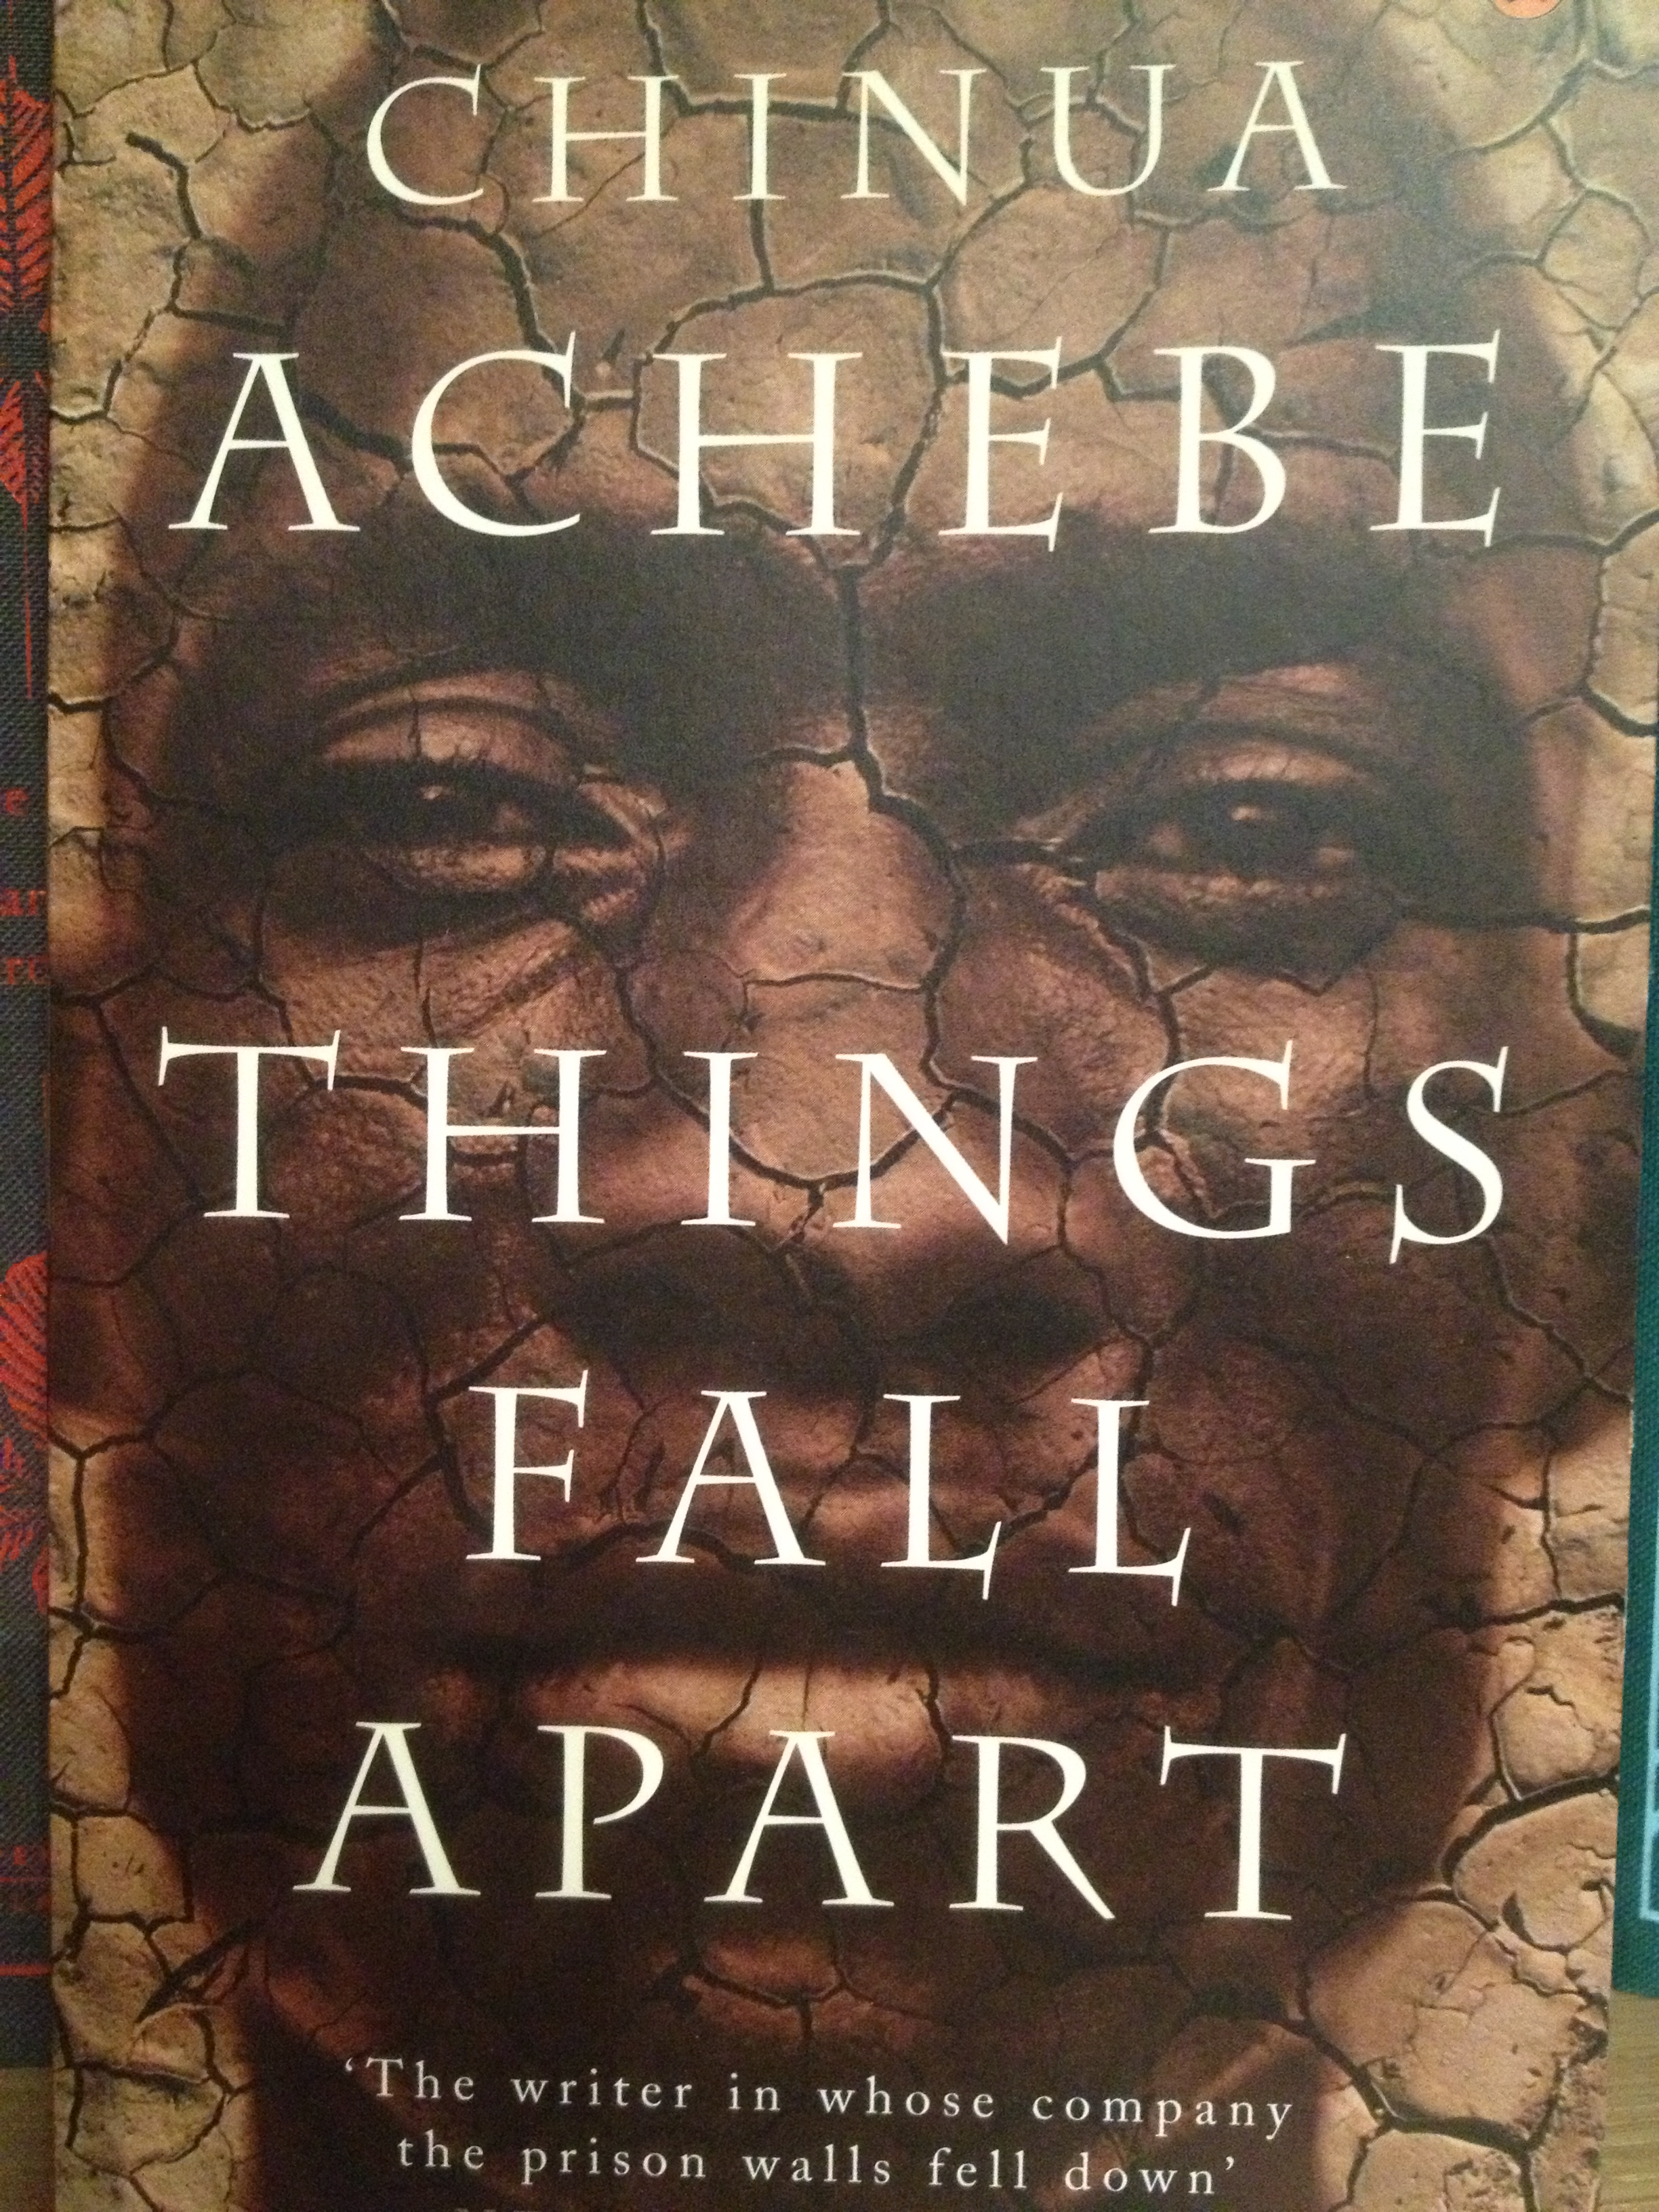 an analysis of okonkwos faults in things fall apart a novel by chinua achebe